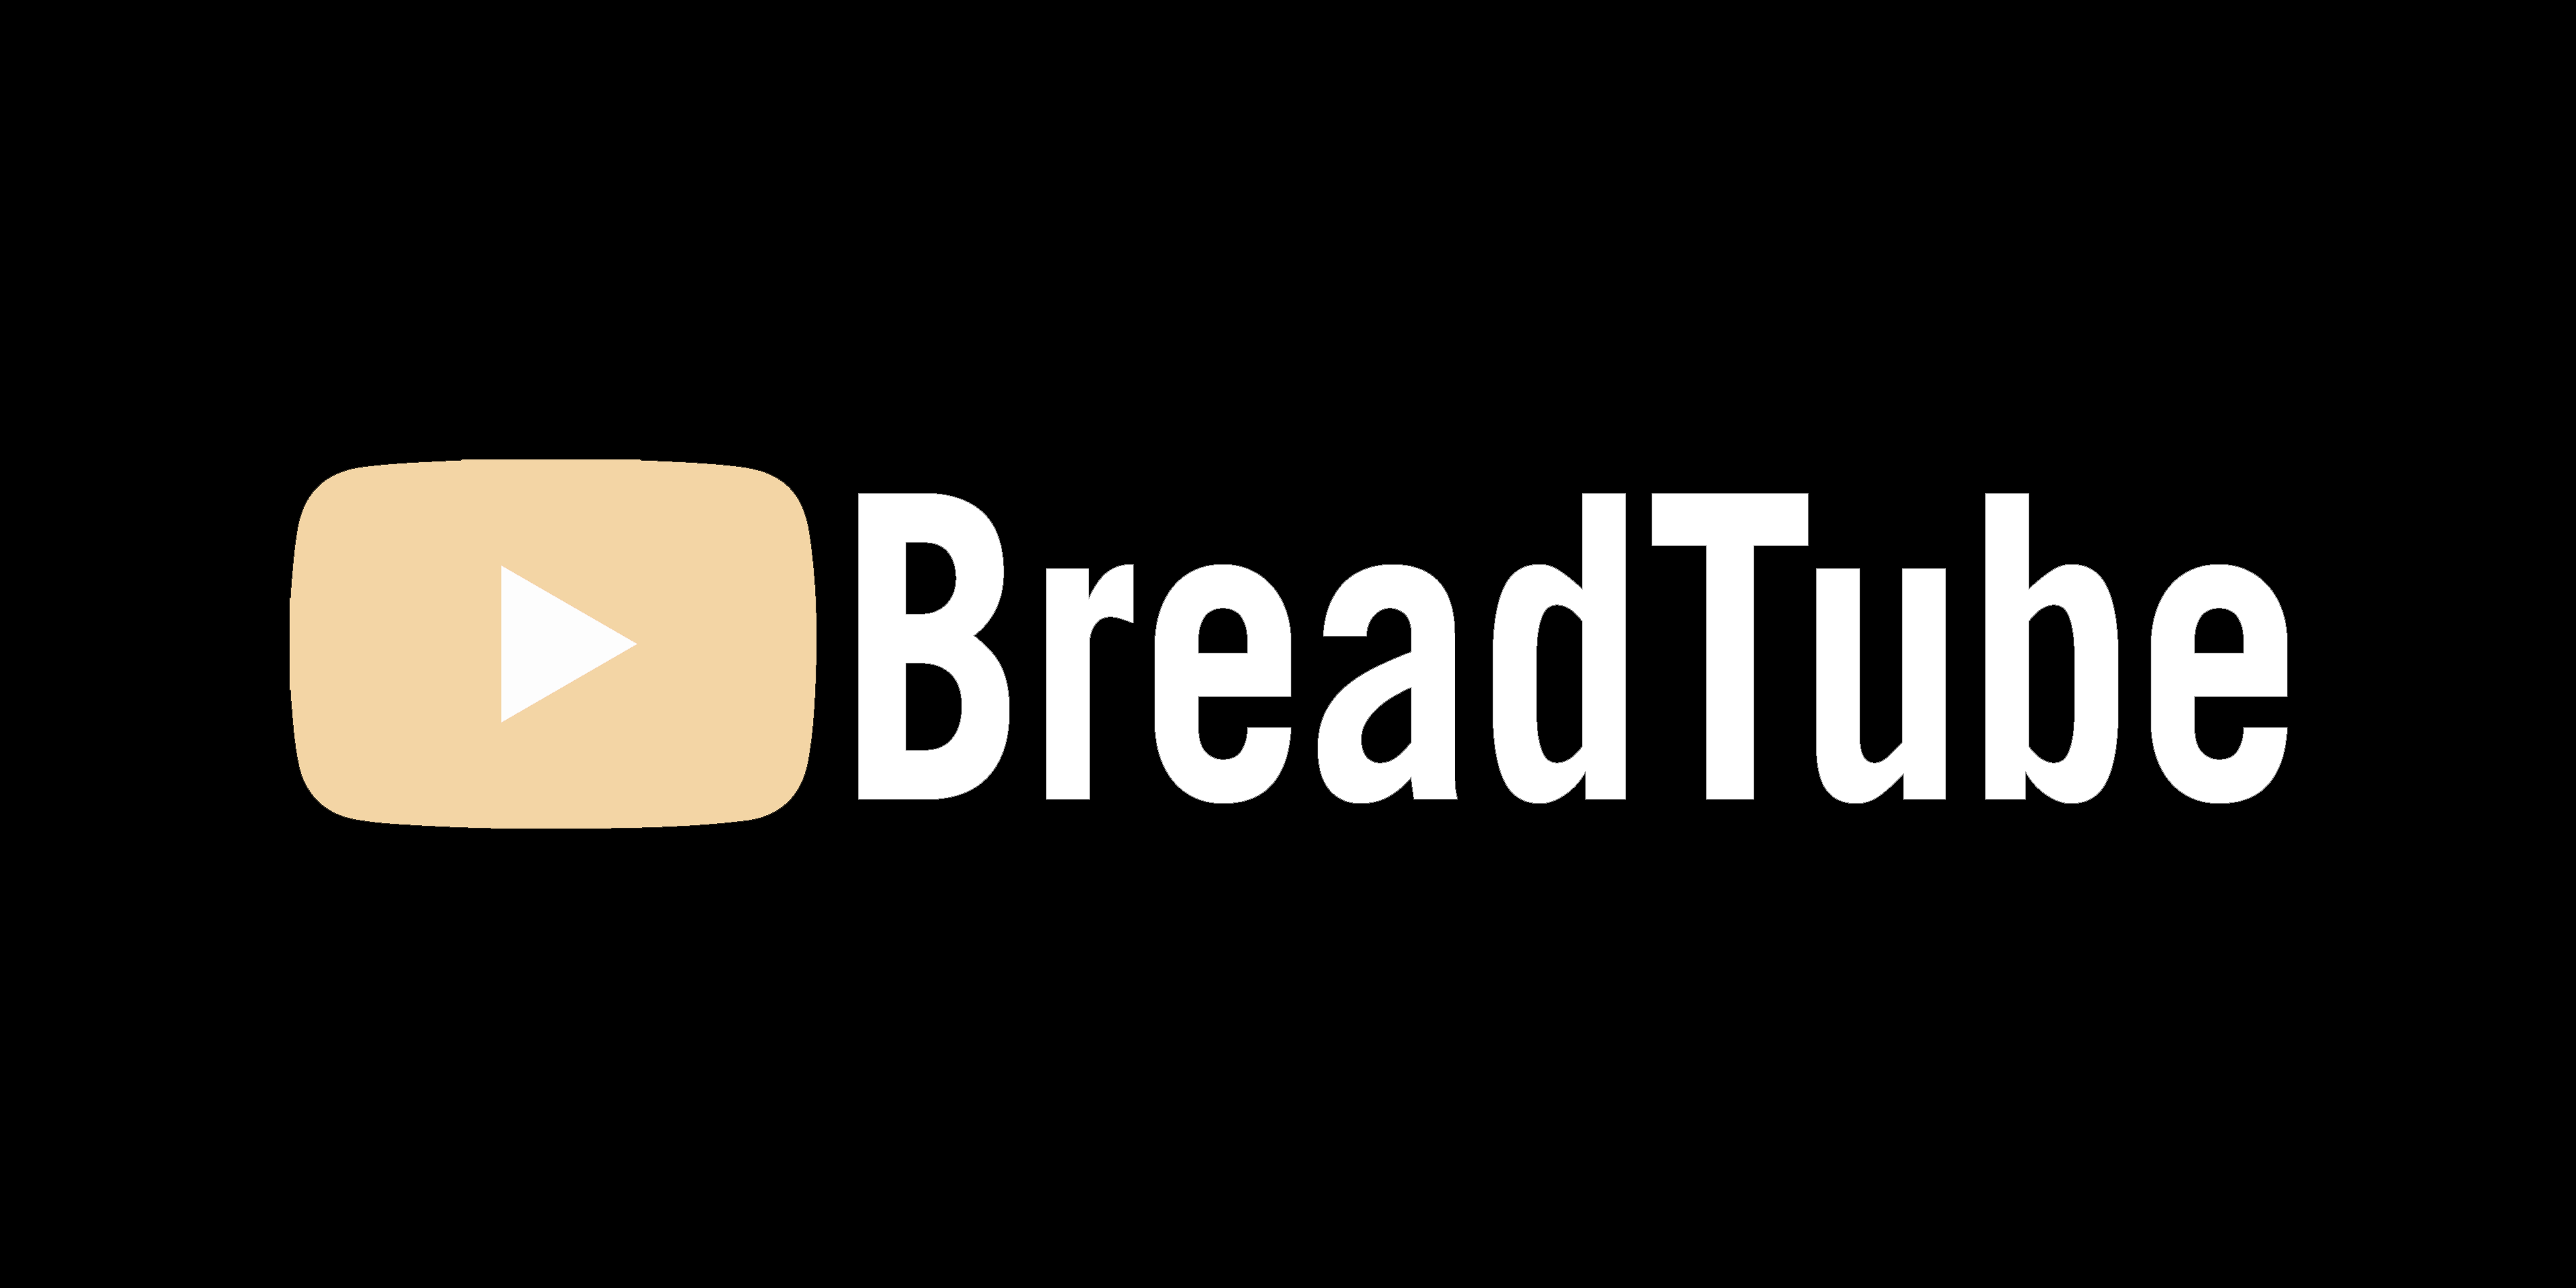 A Battle for the Soul of BreadTube Is Currently Taking Place